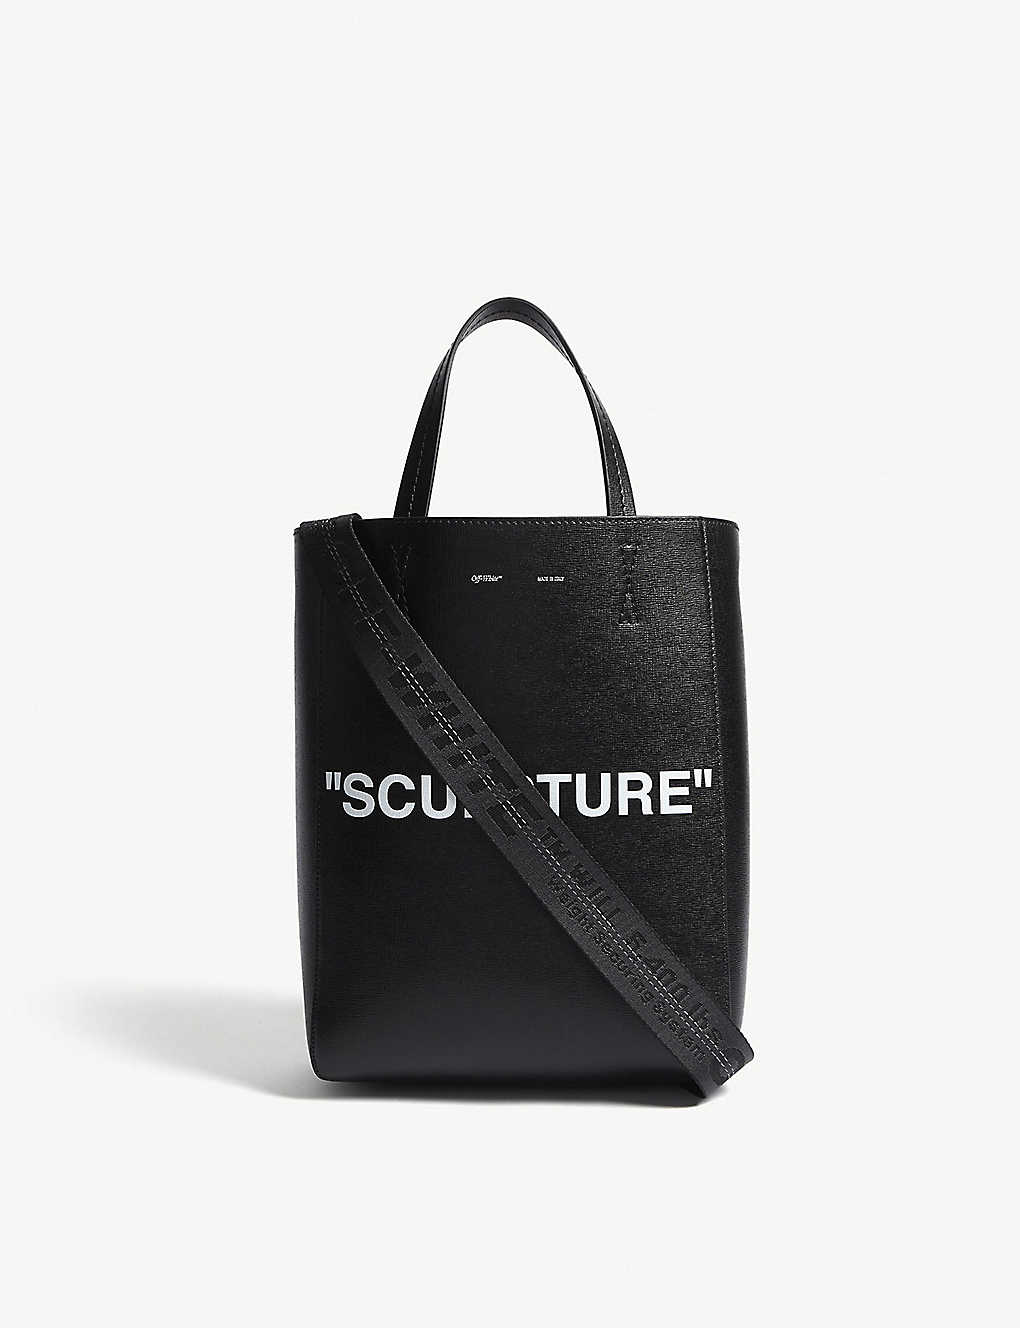 7a77da249331 OFF-WHITE C O VIRGIL ABLOH - Sculpture medium leather tote ...